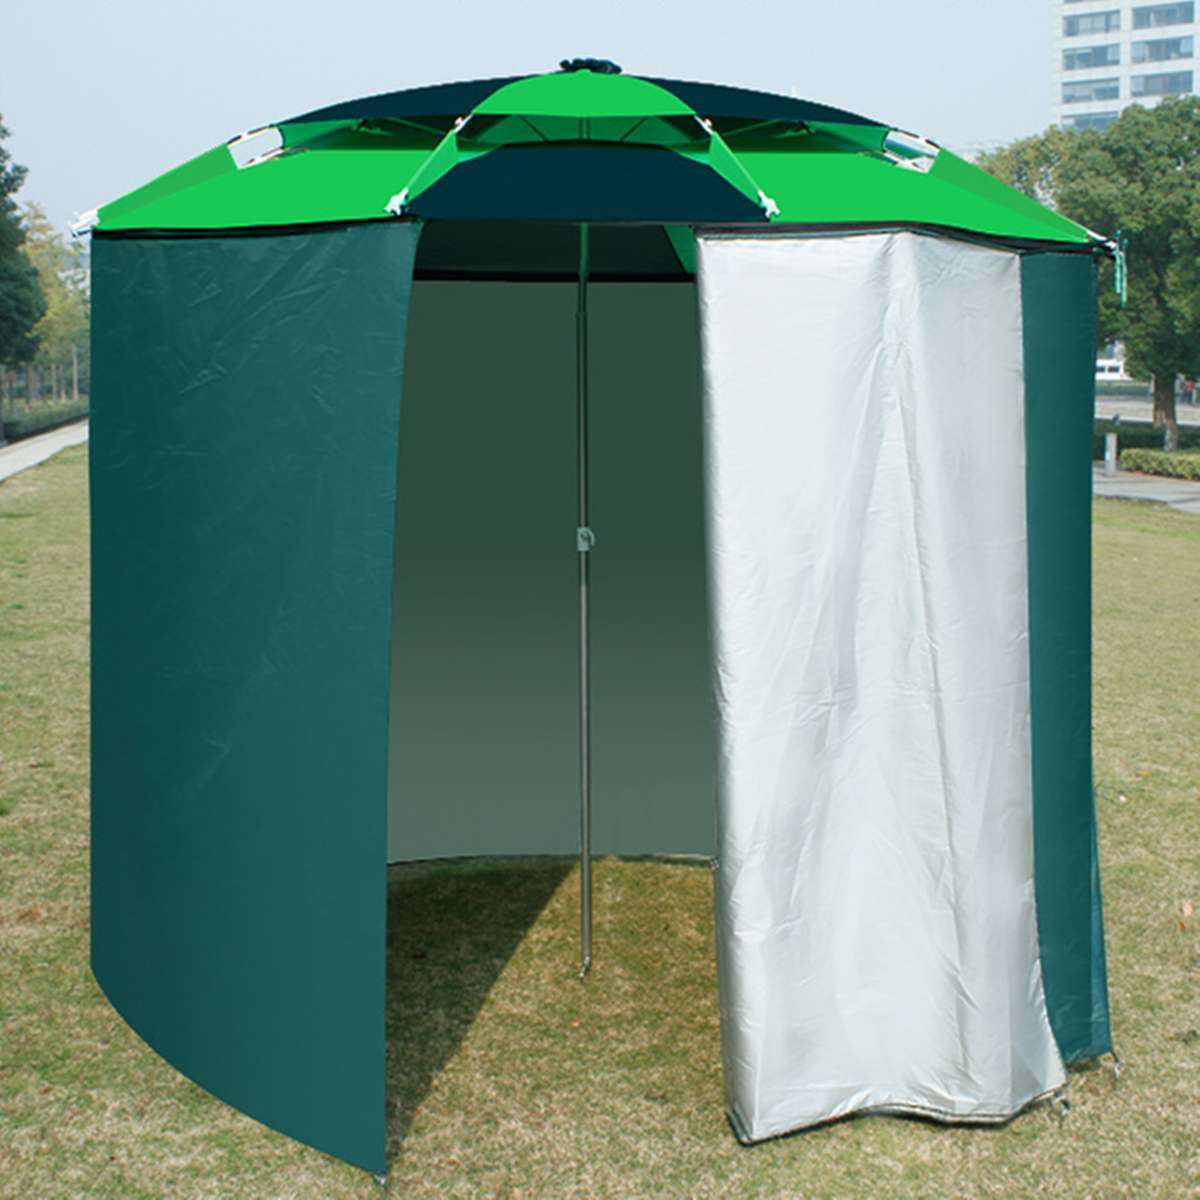 220cm Fishing Umbrella Outdoor Fastener Universal Garden Umbrella Beach Sunshade Rainproof Sunscreen Shelter All Round Tent